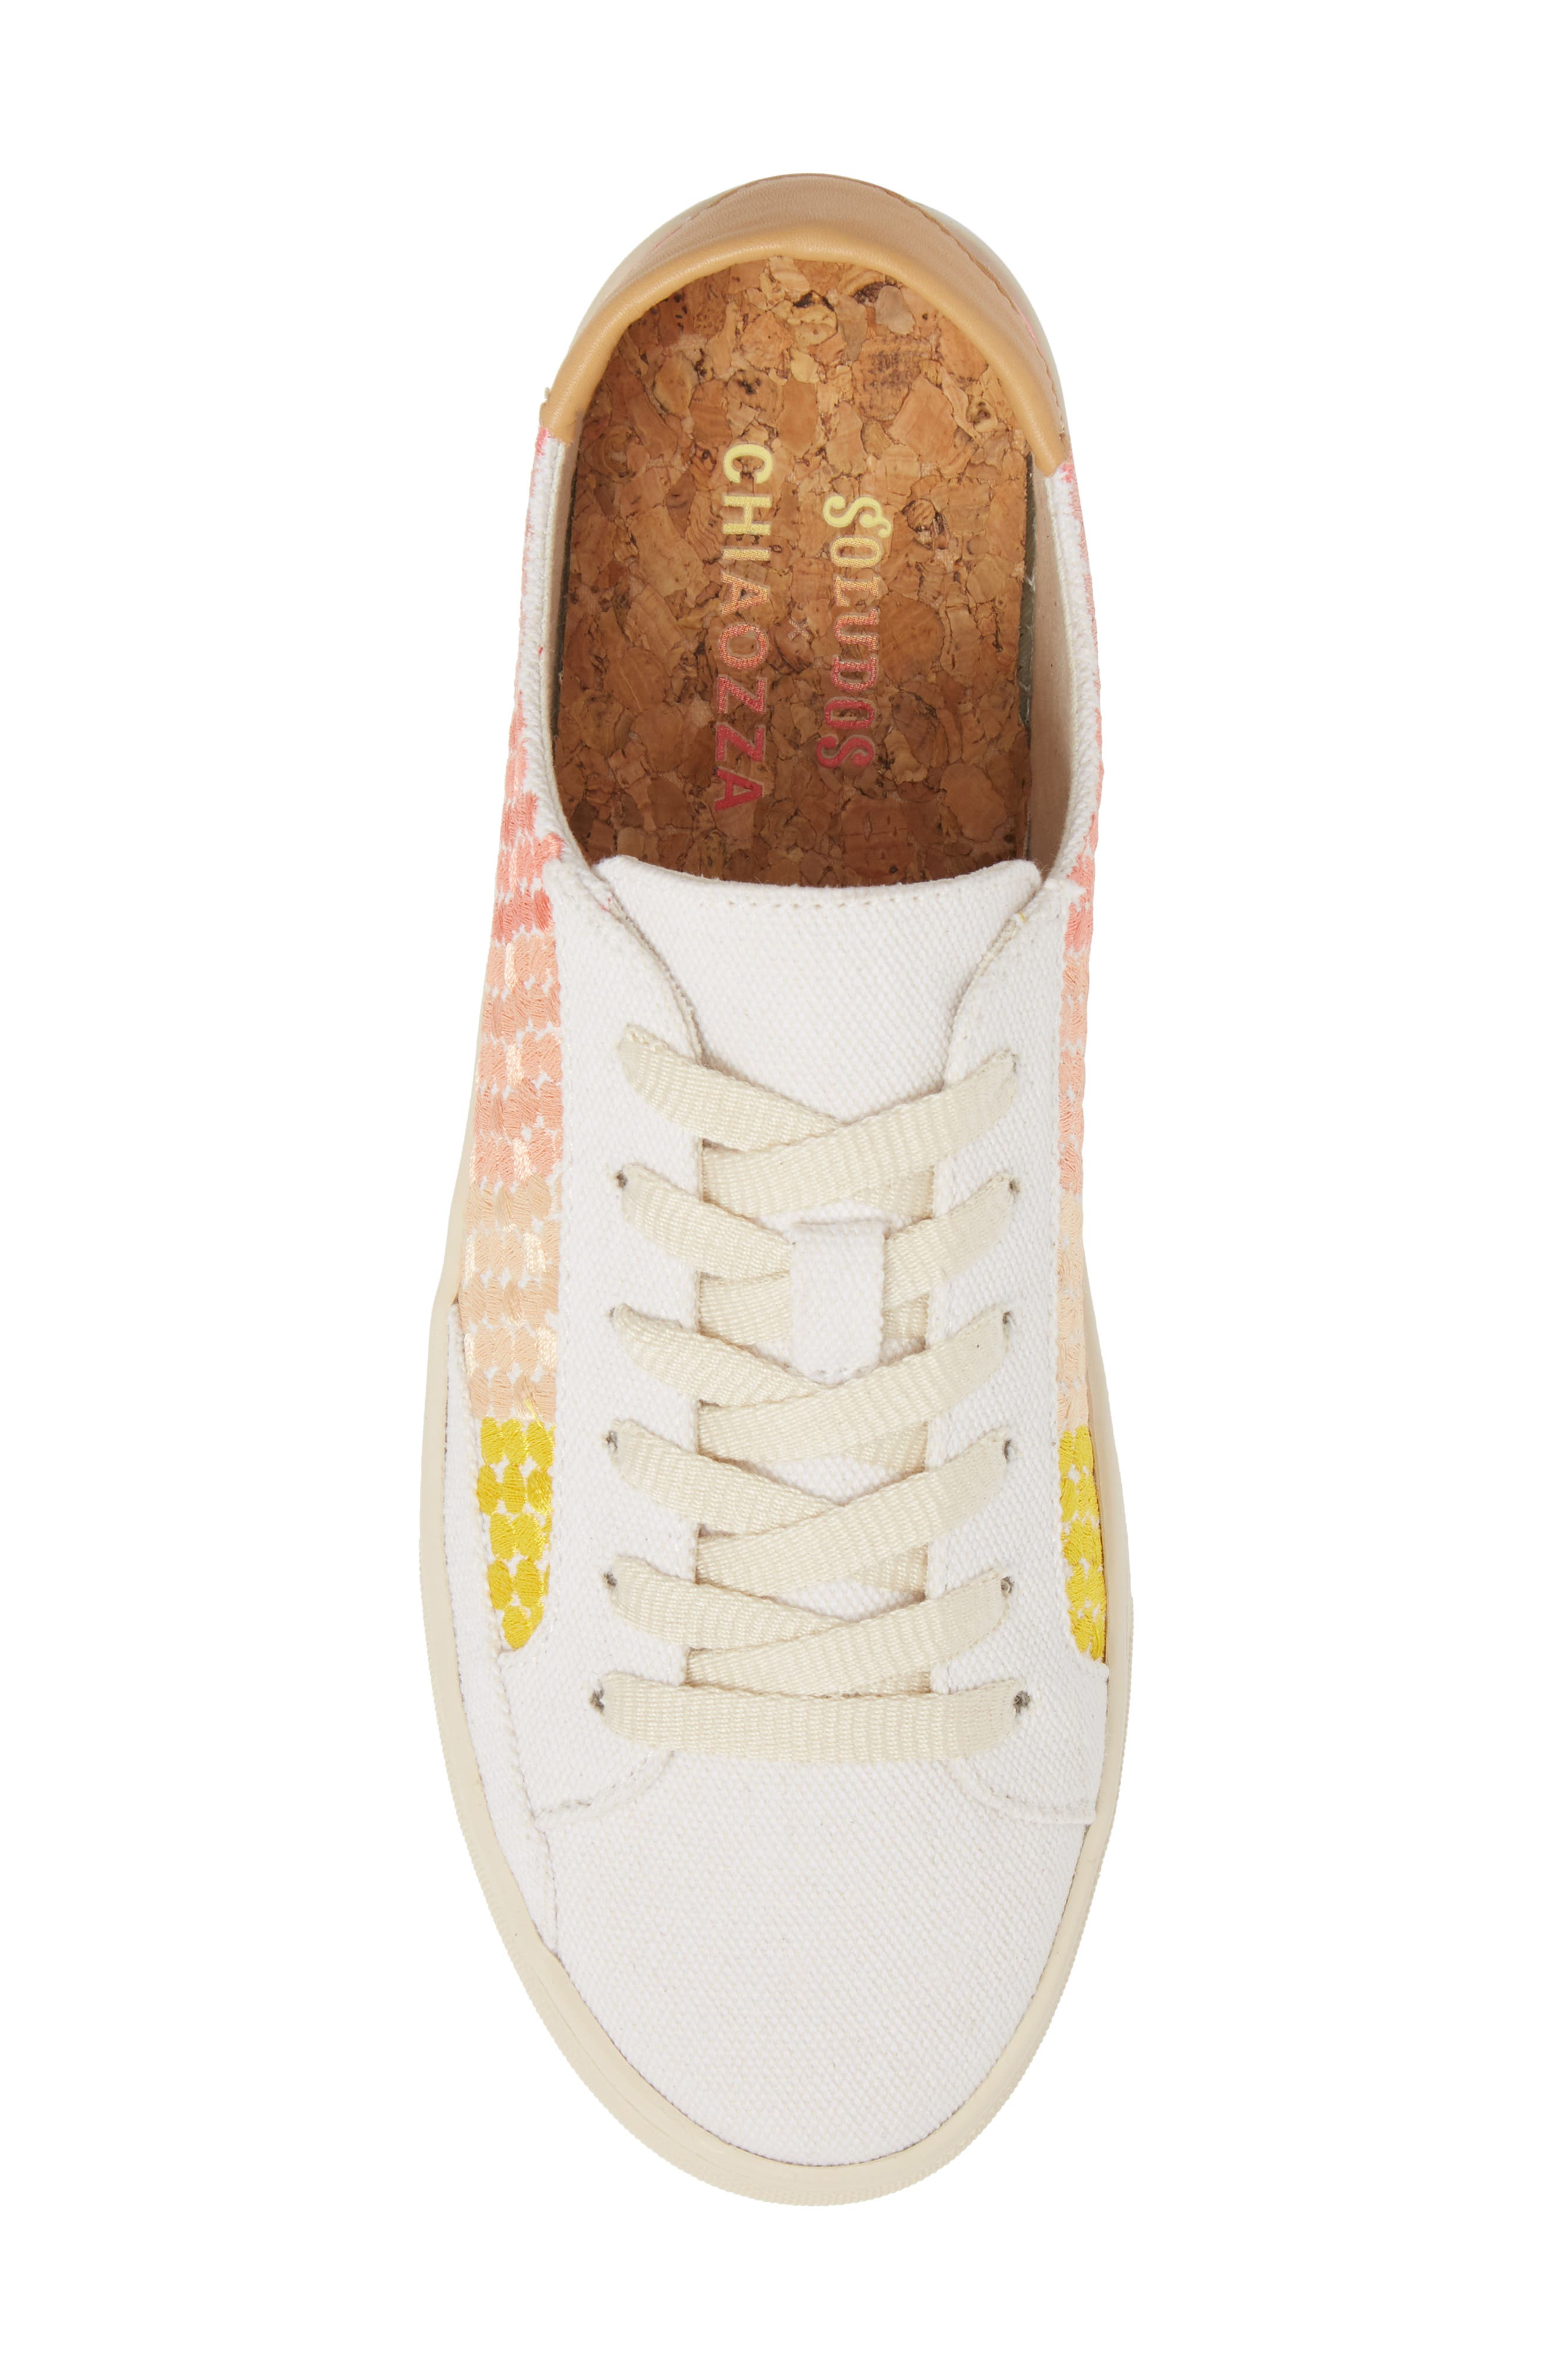 Embroidered Ombre Sneaker,                             Alternate thumbnail 5, color,                             731